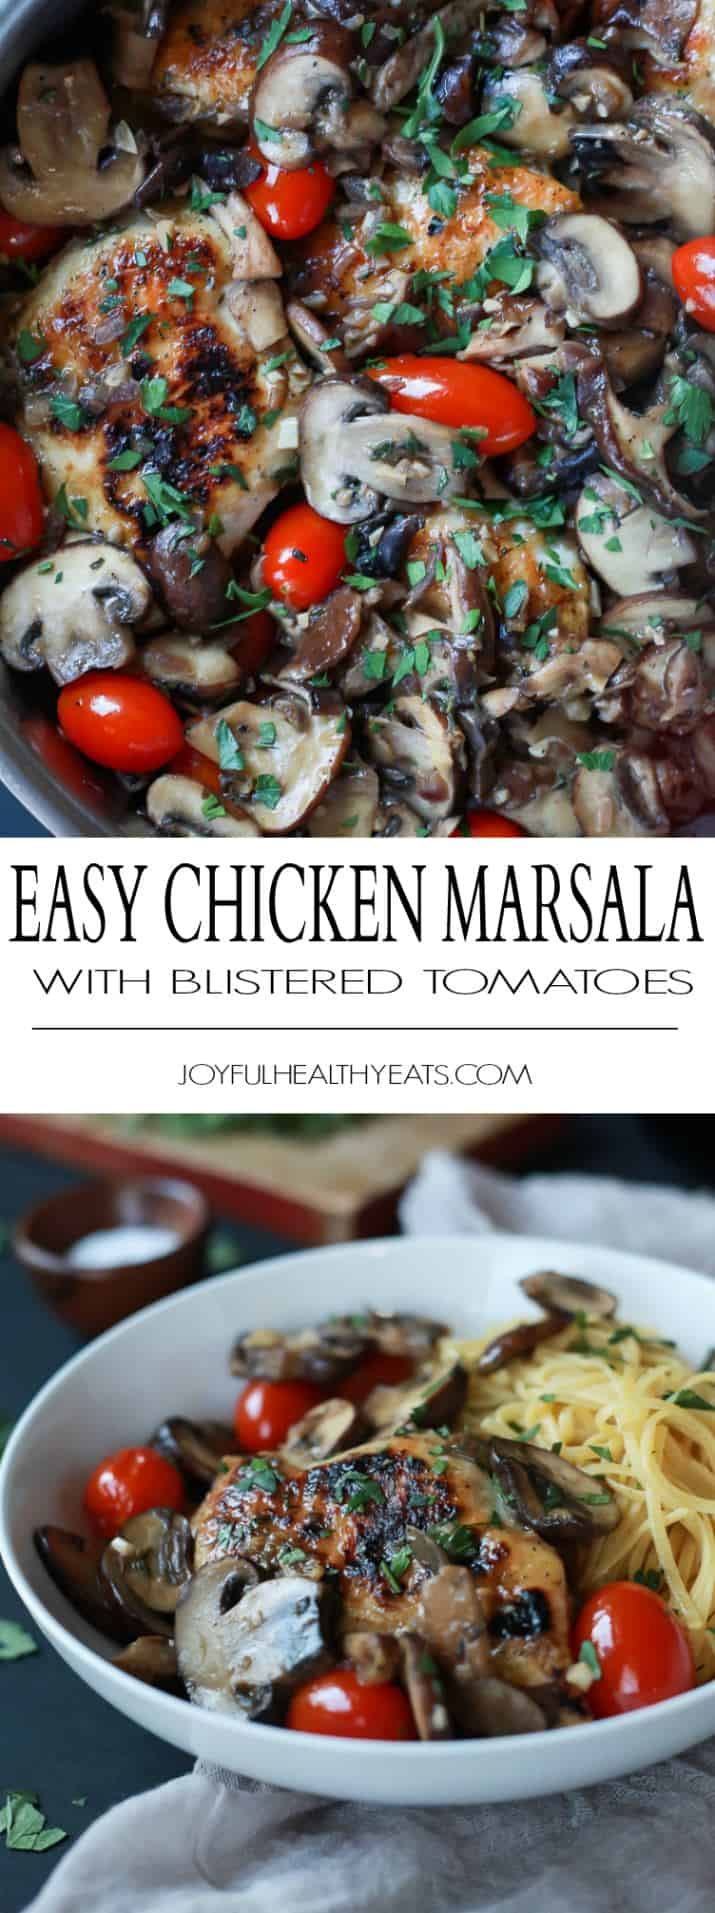 Easy Chicken Marsala with Blistered Tomatoes | Easy Dinner Recipes ...